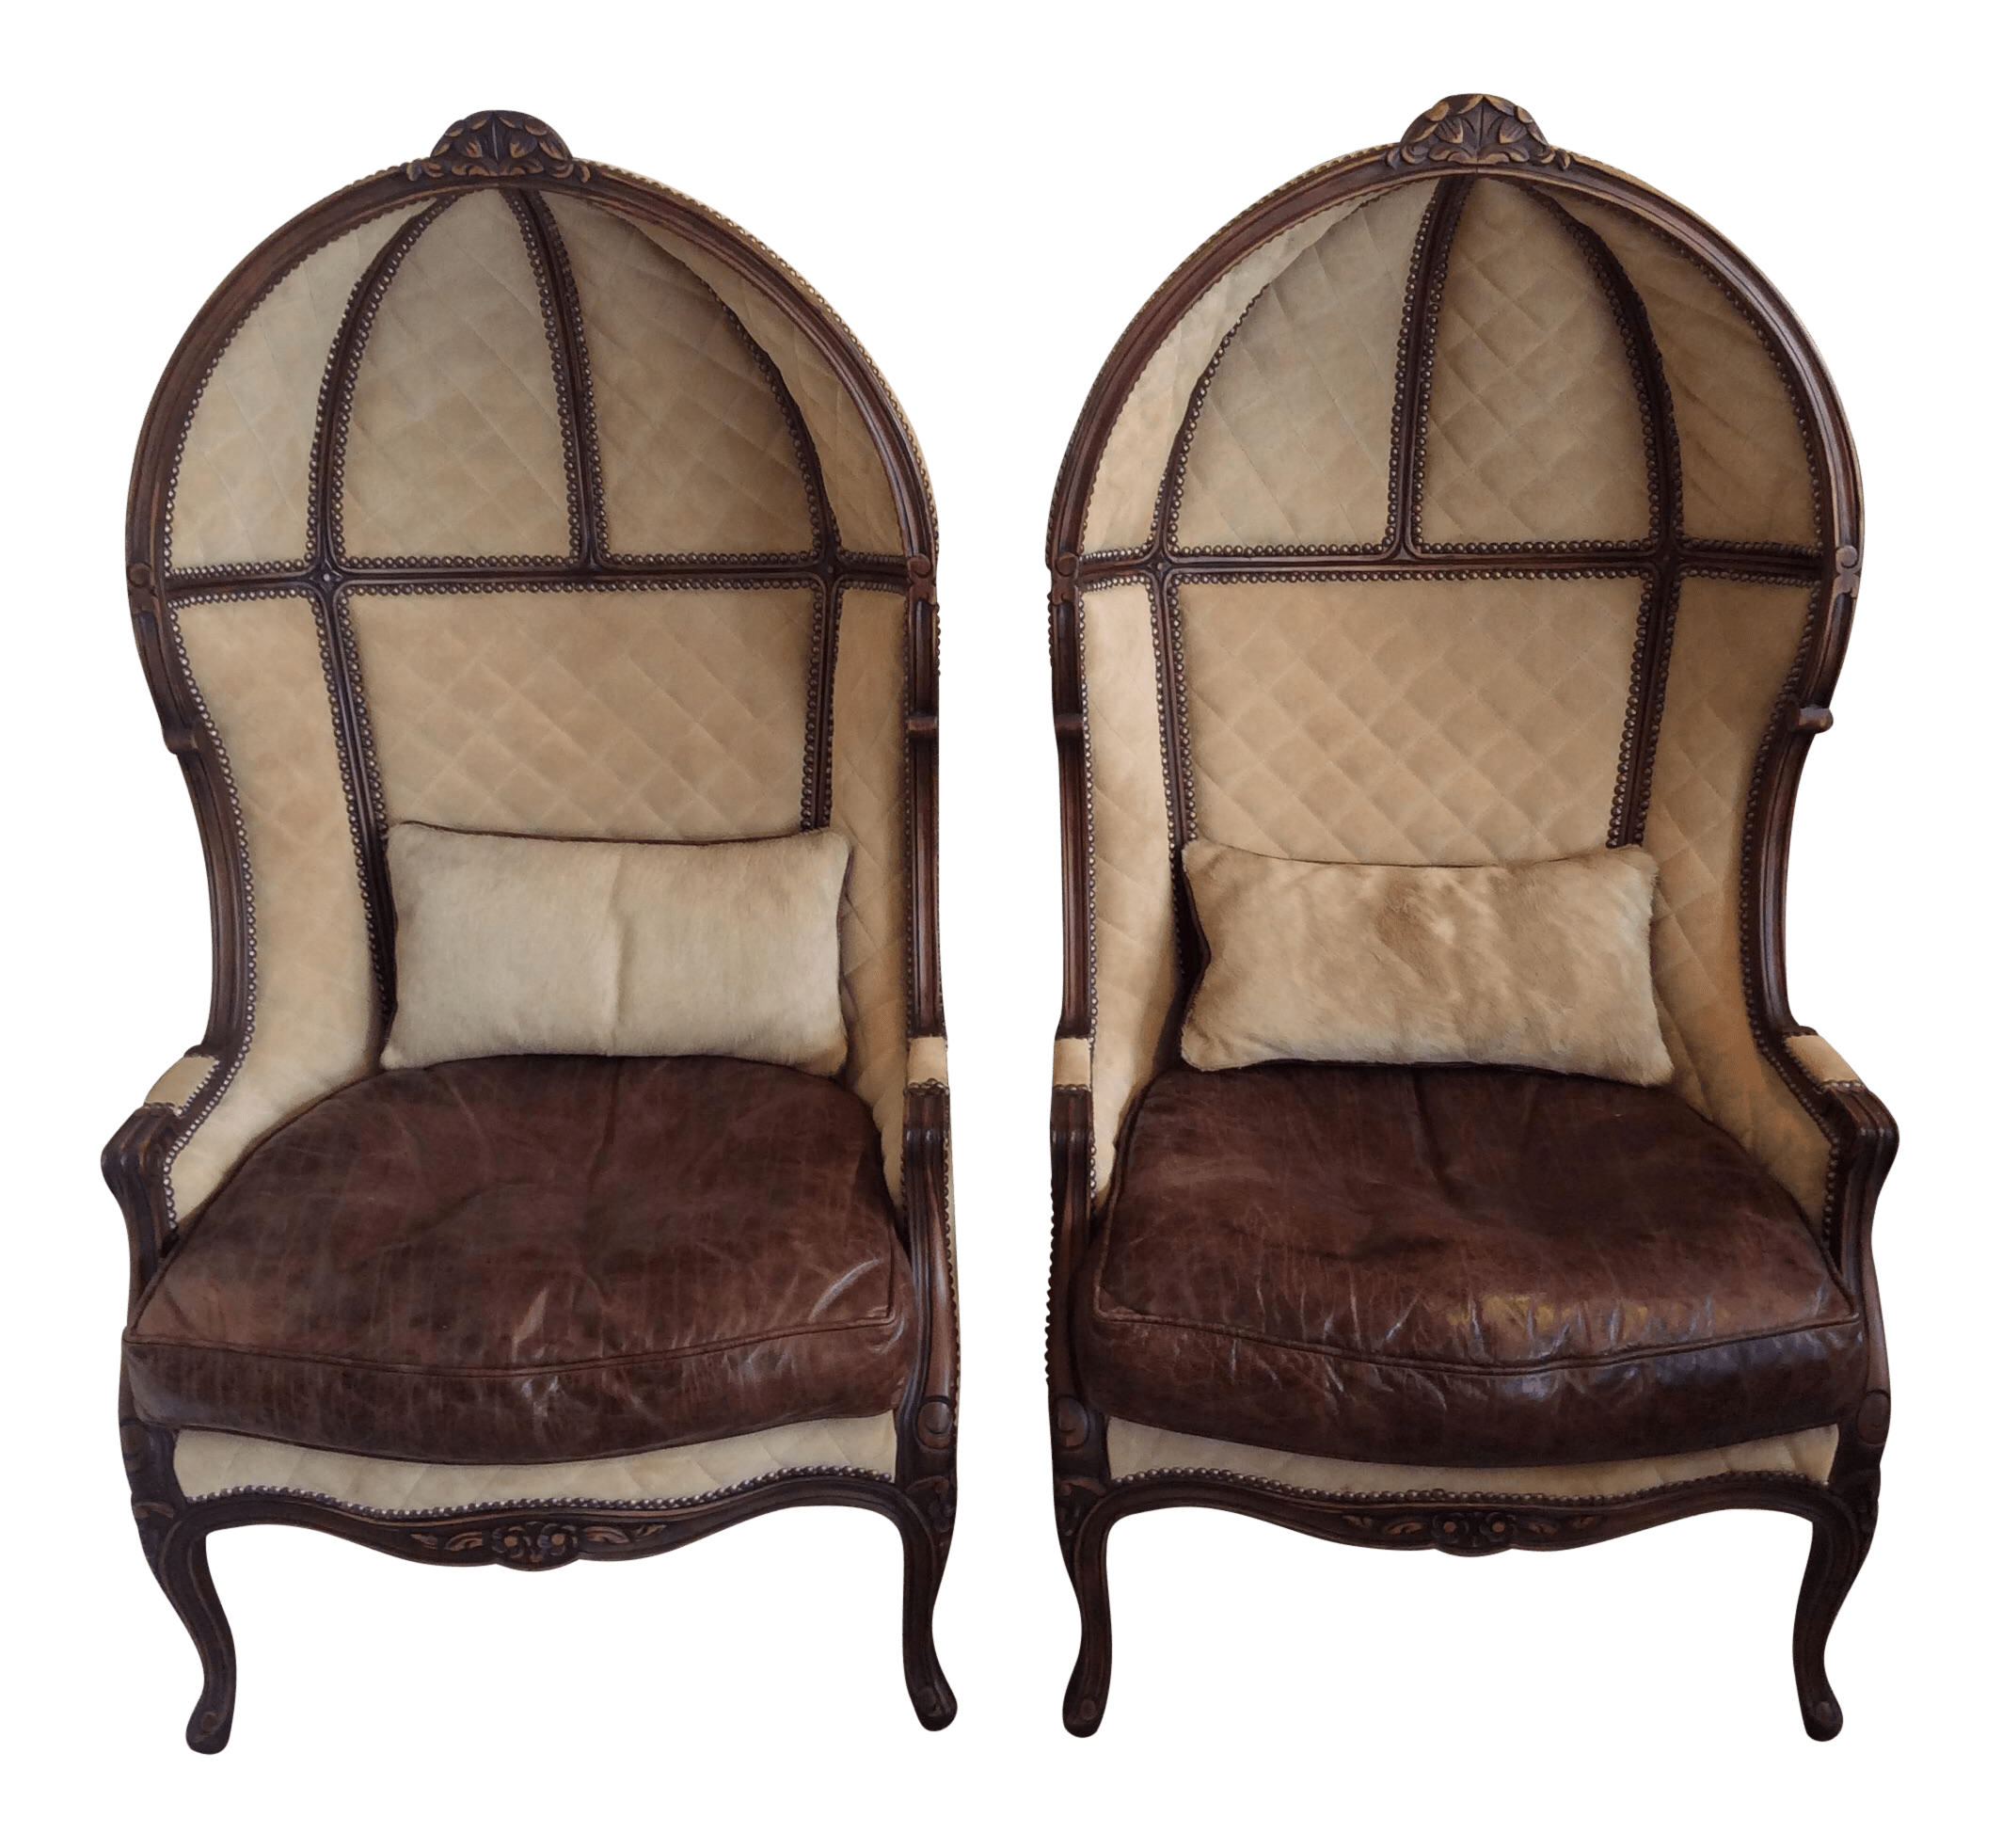 Hooded Chair Hooded Porter 39s Chairs Pair Chairish